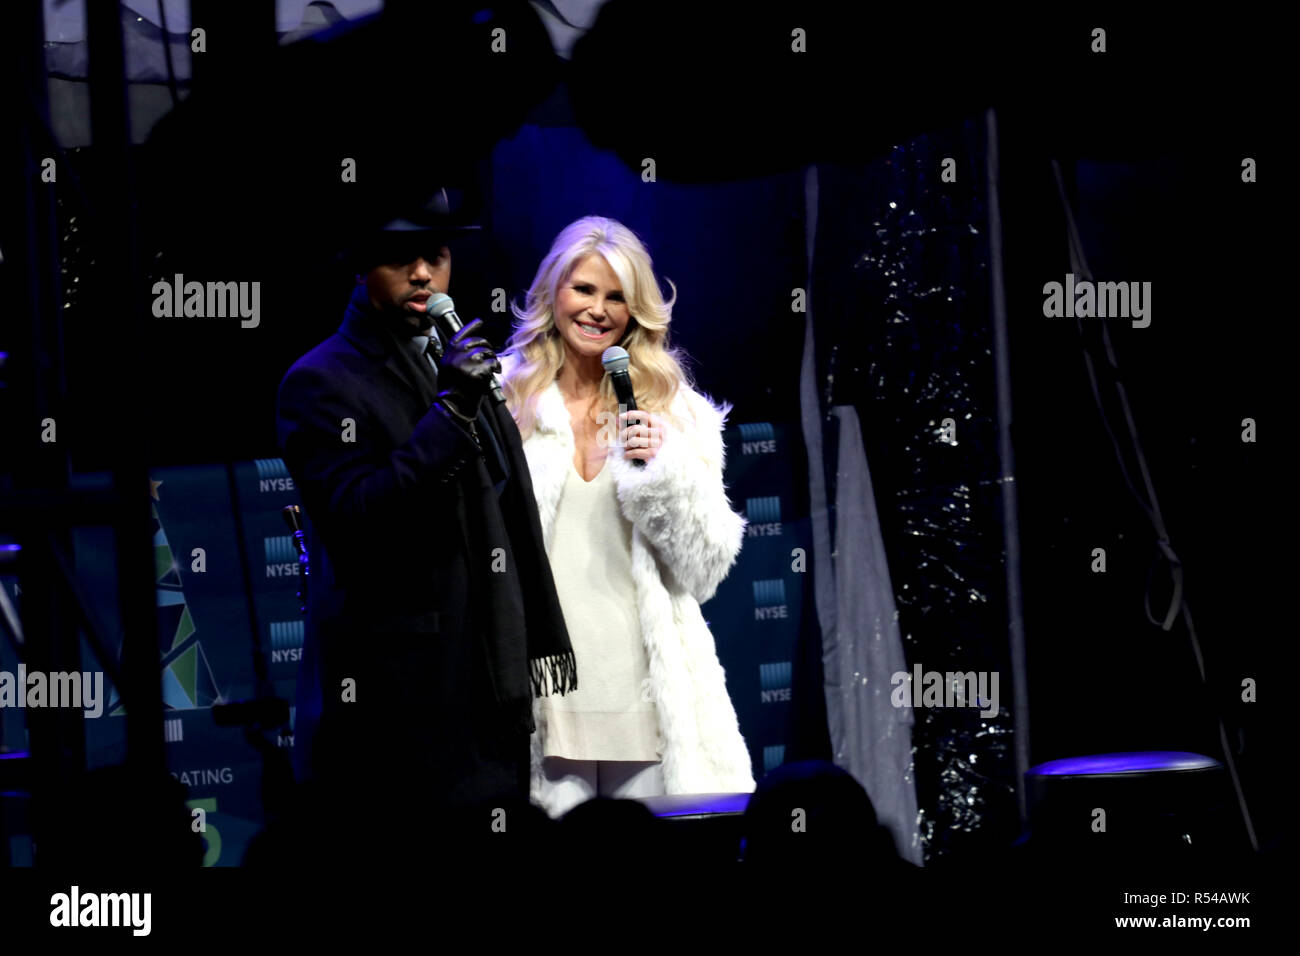 New York City, New York, USA. 29th Nov, 2018. Former supermodel Christine Brinkley promoting her brand as the New York Stock Exchange celebrated its Ninety-fifth (95) annual Christmas Tree lighting ceremony on 29 November 2018, outside its famous Wall Street location in Lower Manhattan. The tree lighting ceremony included entertainment and a sound stage that featured interviews with well-known personalities. Credit: G. Ronald Lopez/ZUMA Wire/Alamy Live News Stock Photo